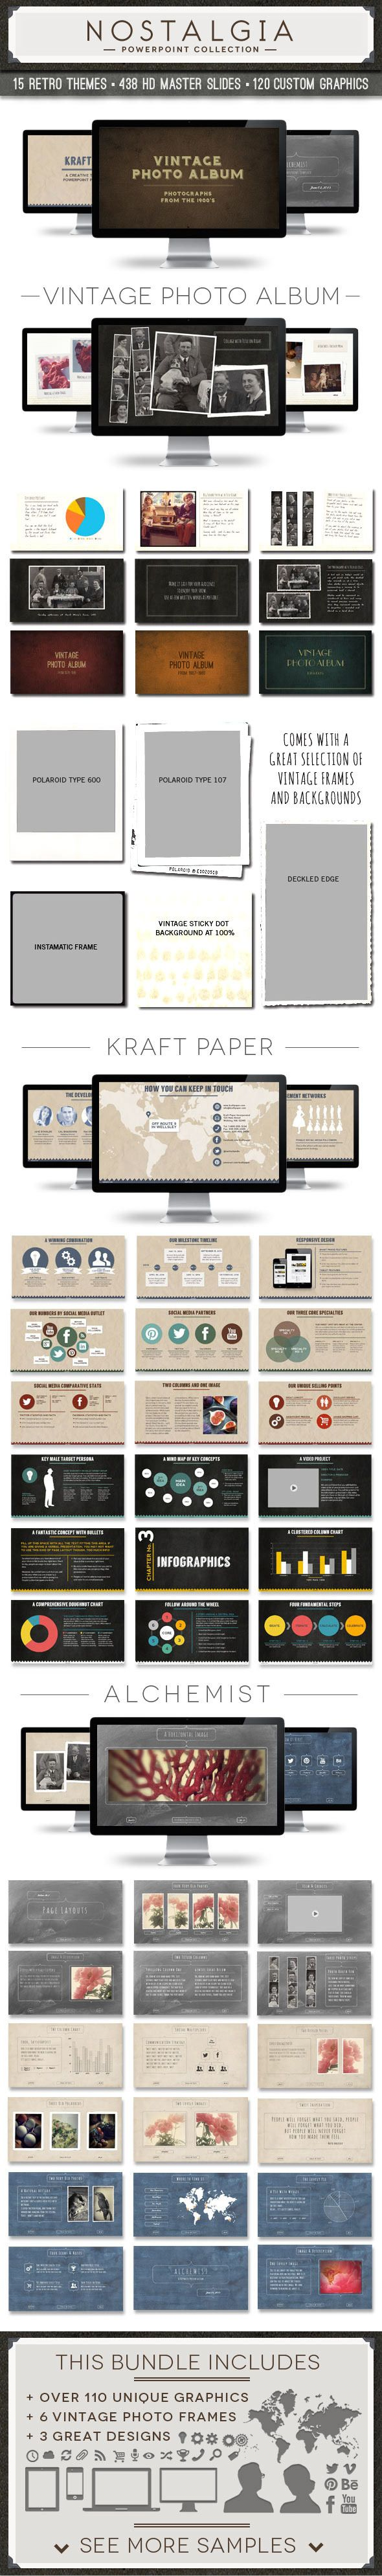 Nostalgia Collection Powerpoint Template Bundle - great photo album and ebook templates - perfect for diy gifts